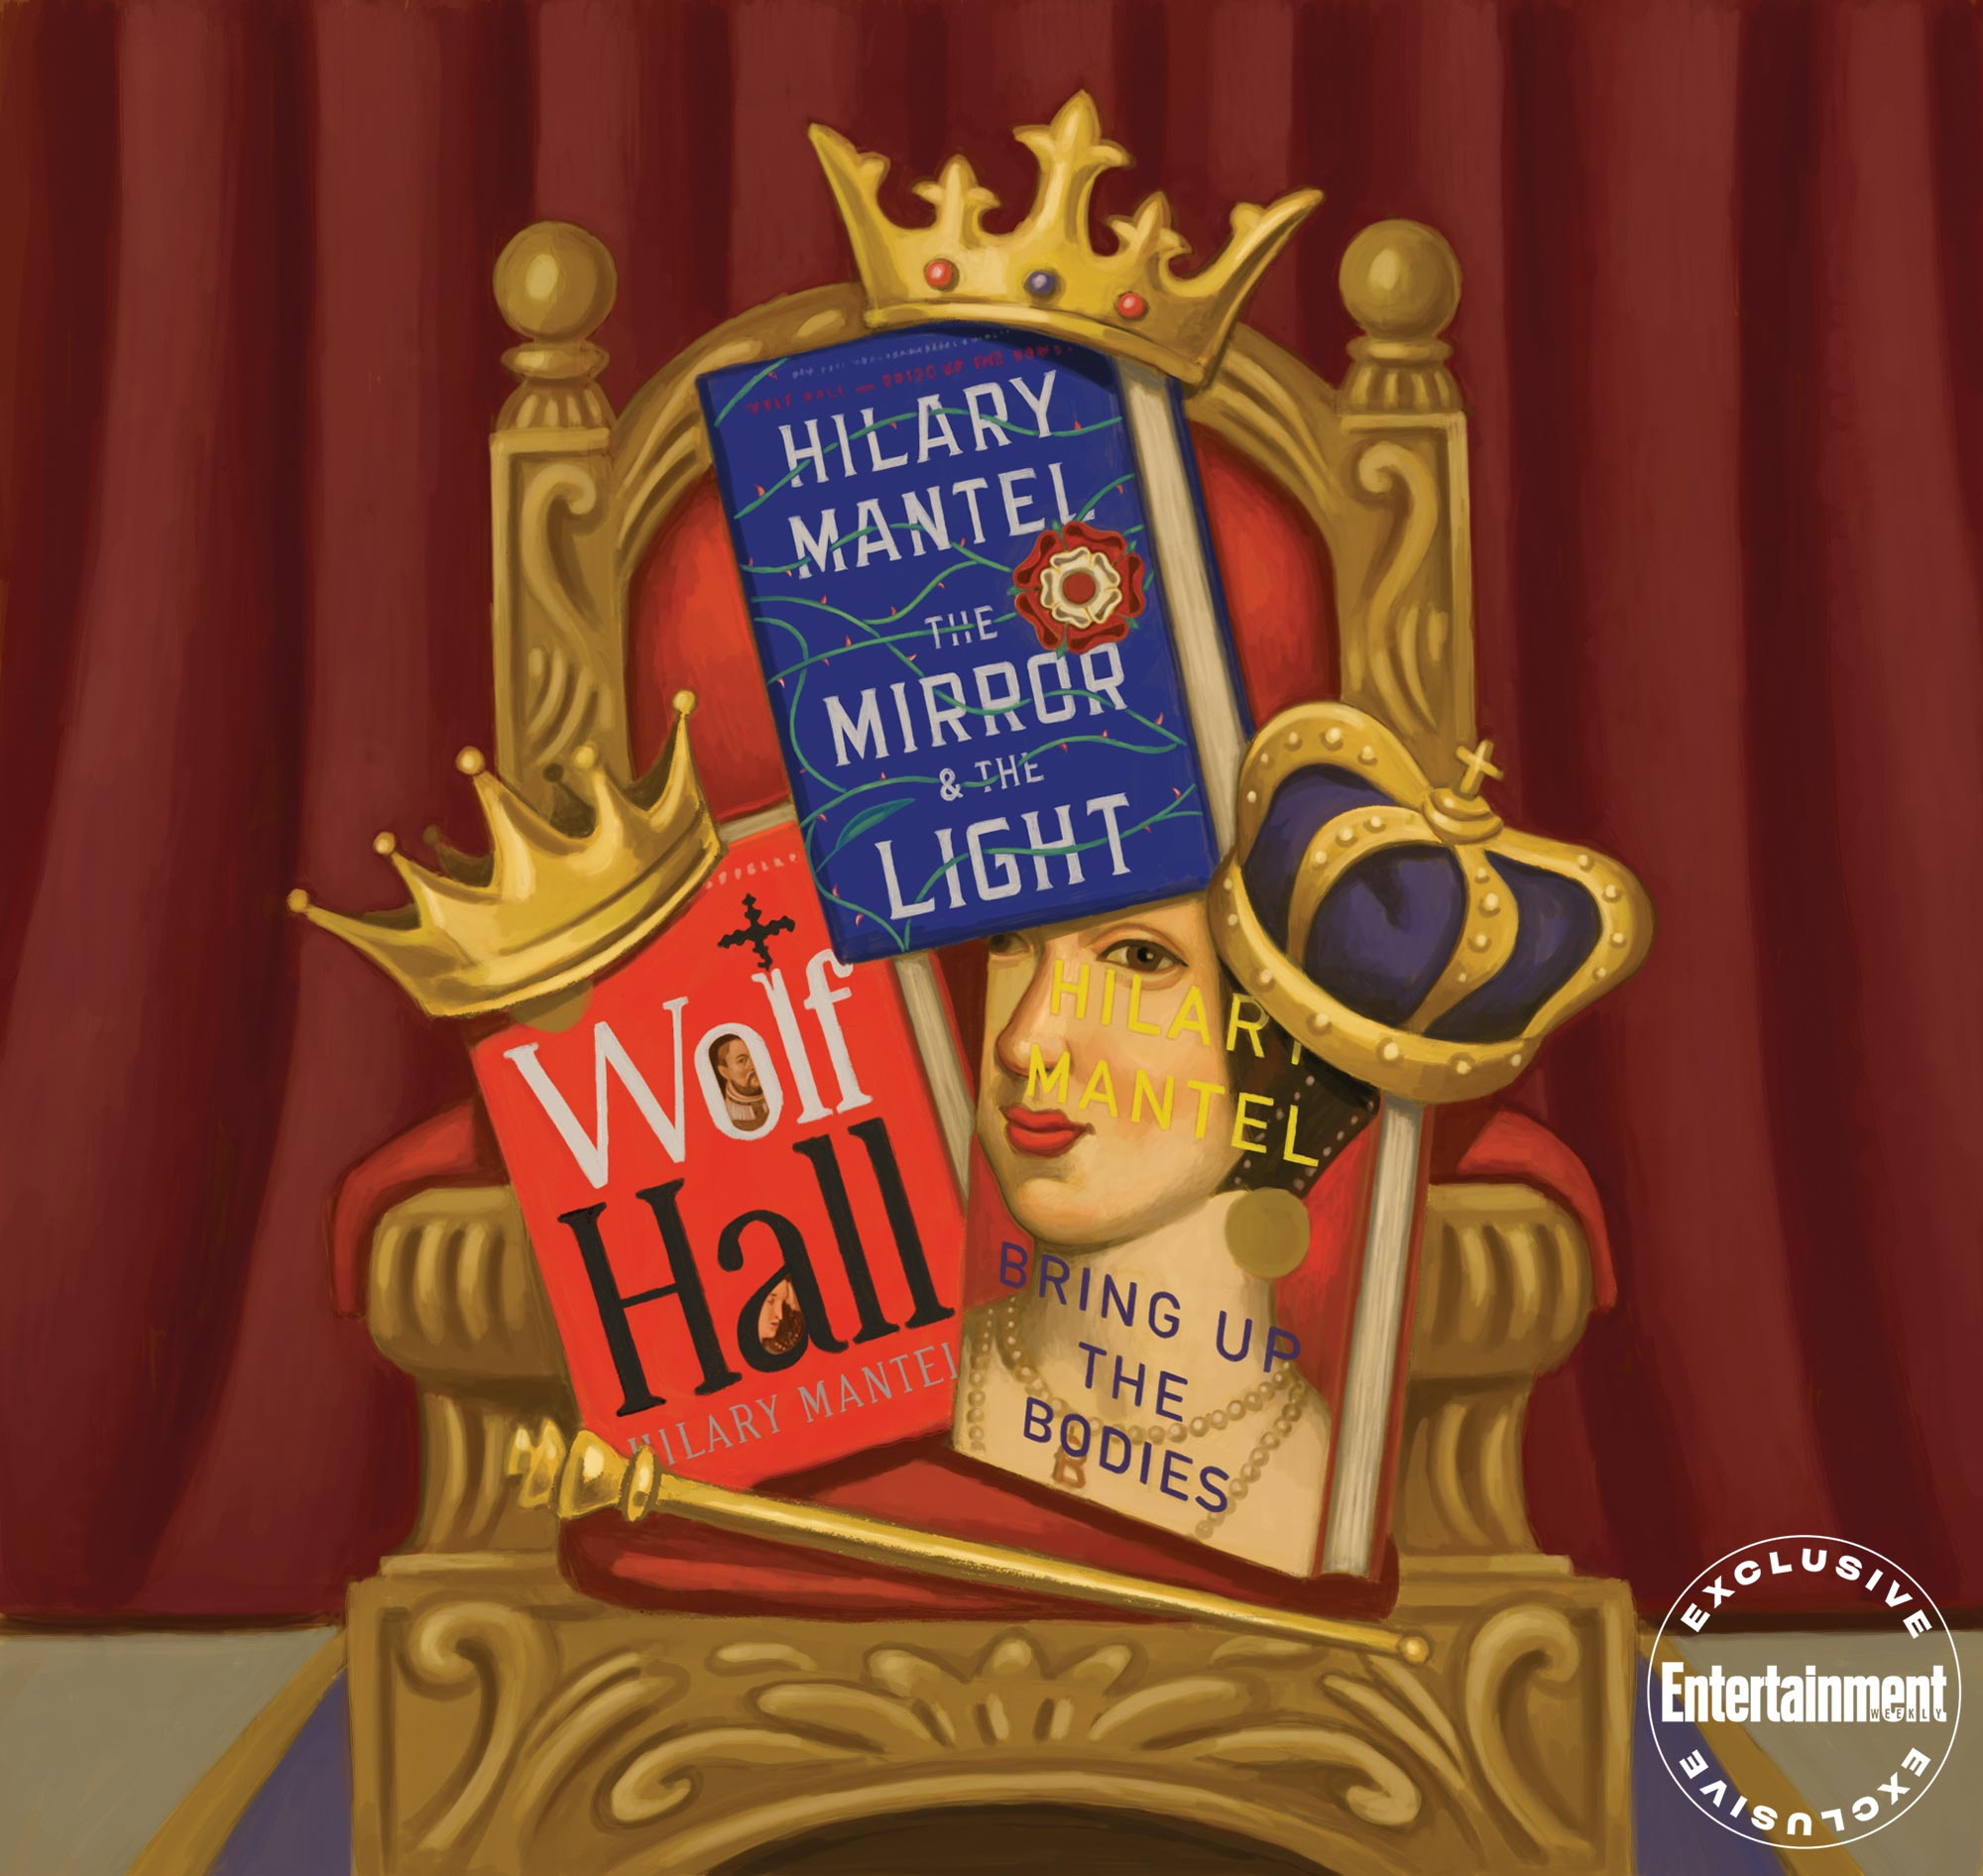 Wolf Hall Books Triple Crown